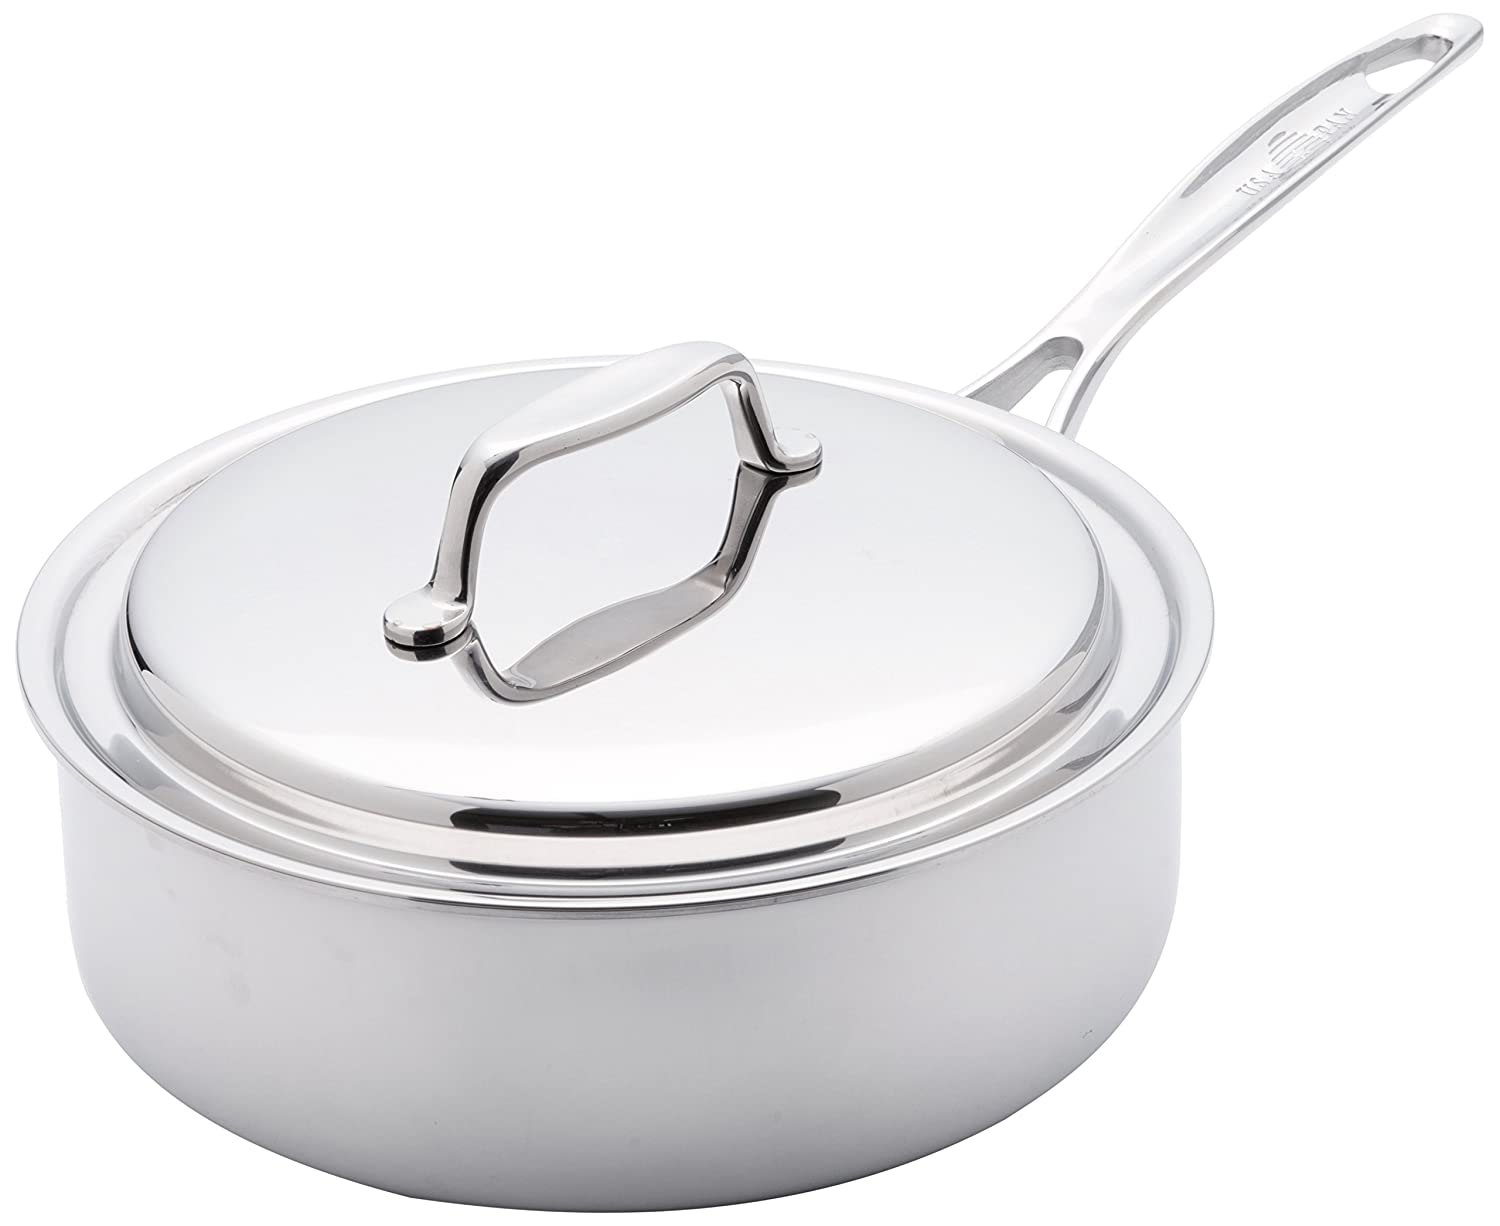 USA Pan 1505CW-1 Cookware 5-Ply Stainless Steel 8 Inch Sauce Pan with Cover, Oven and Dishwasher Safe, Made in the USA 8-Inch, Silver